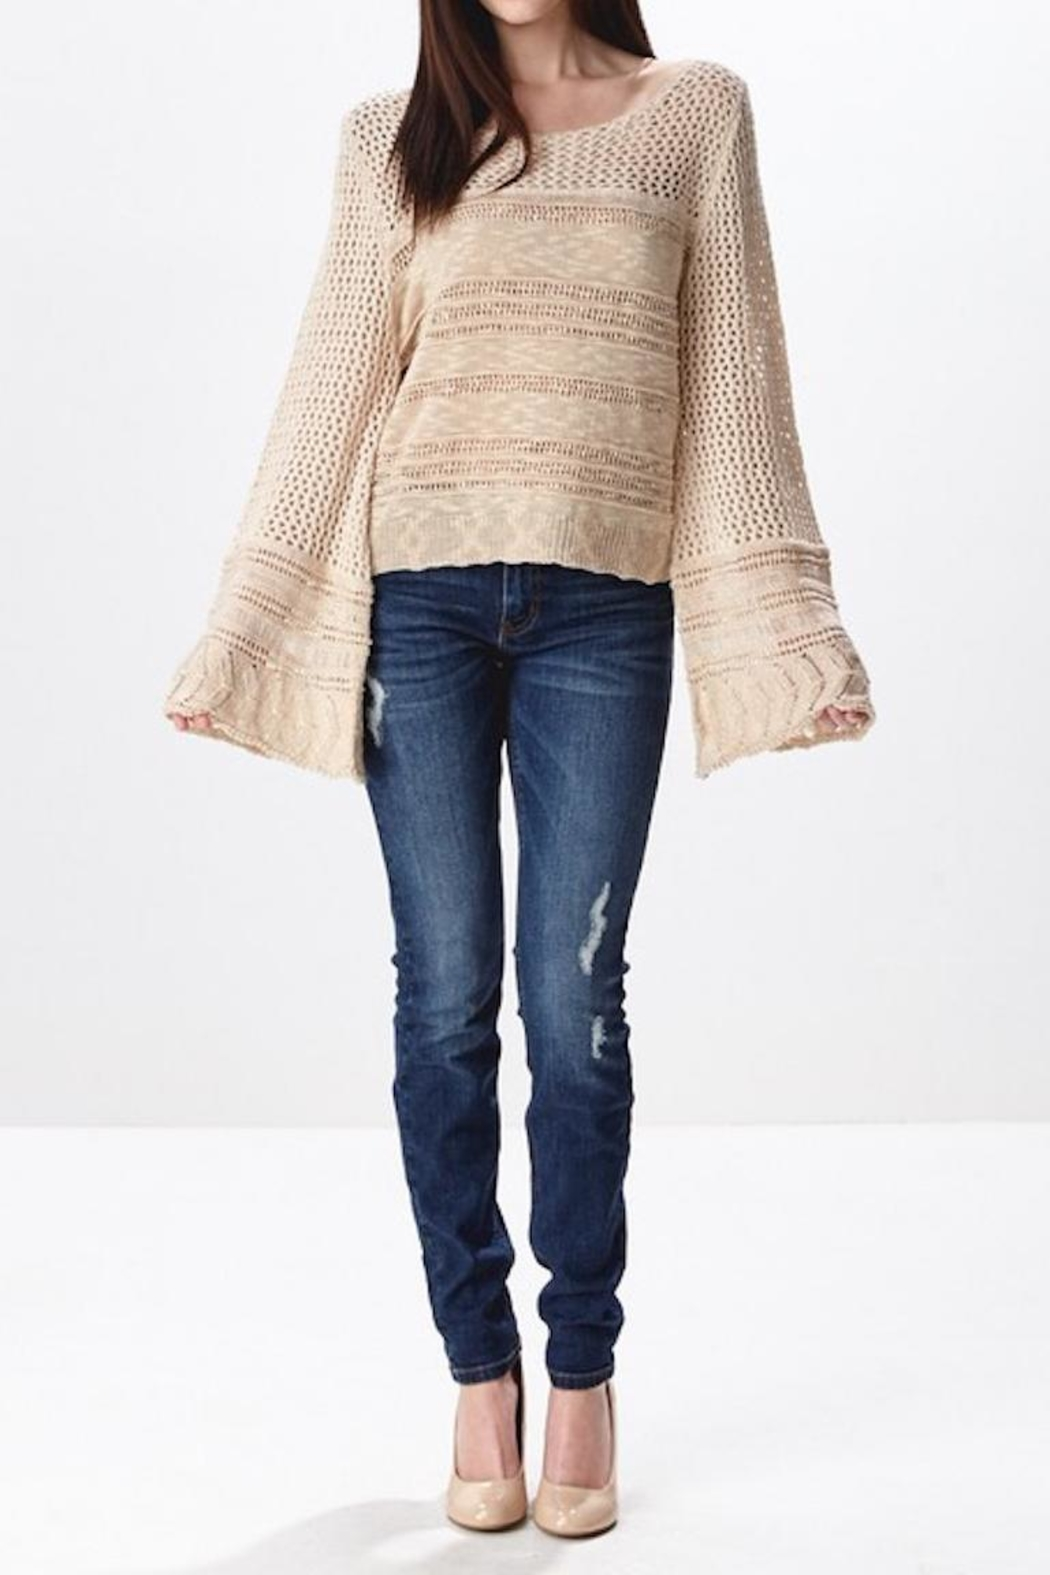 Ganji LA Neutral Beige Sweater - Main Image